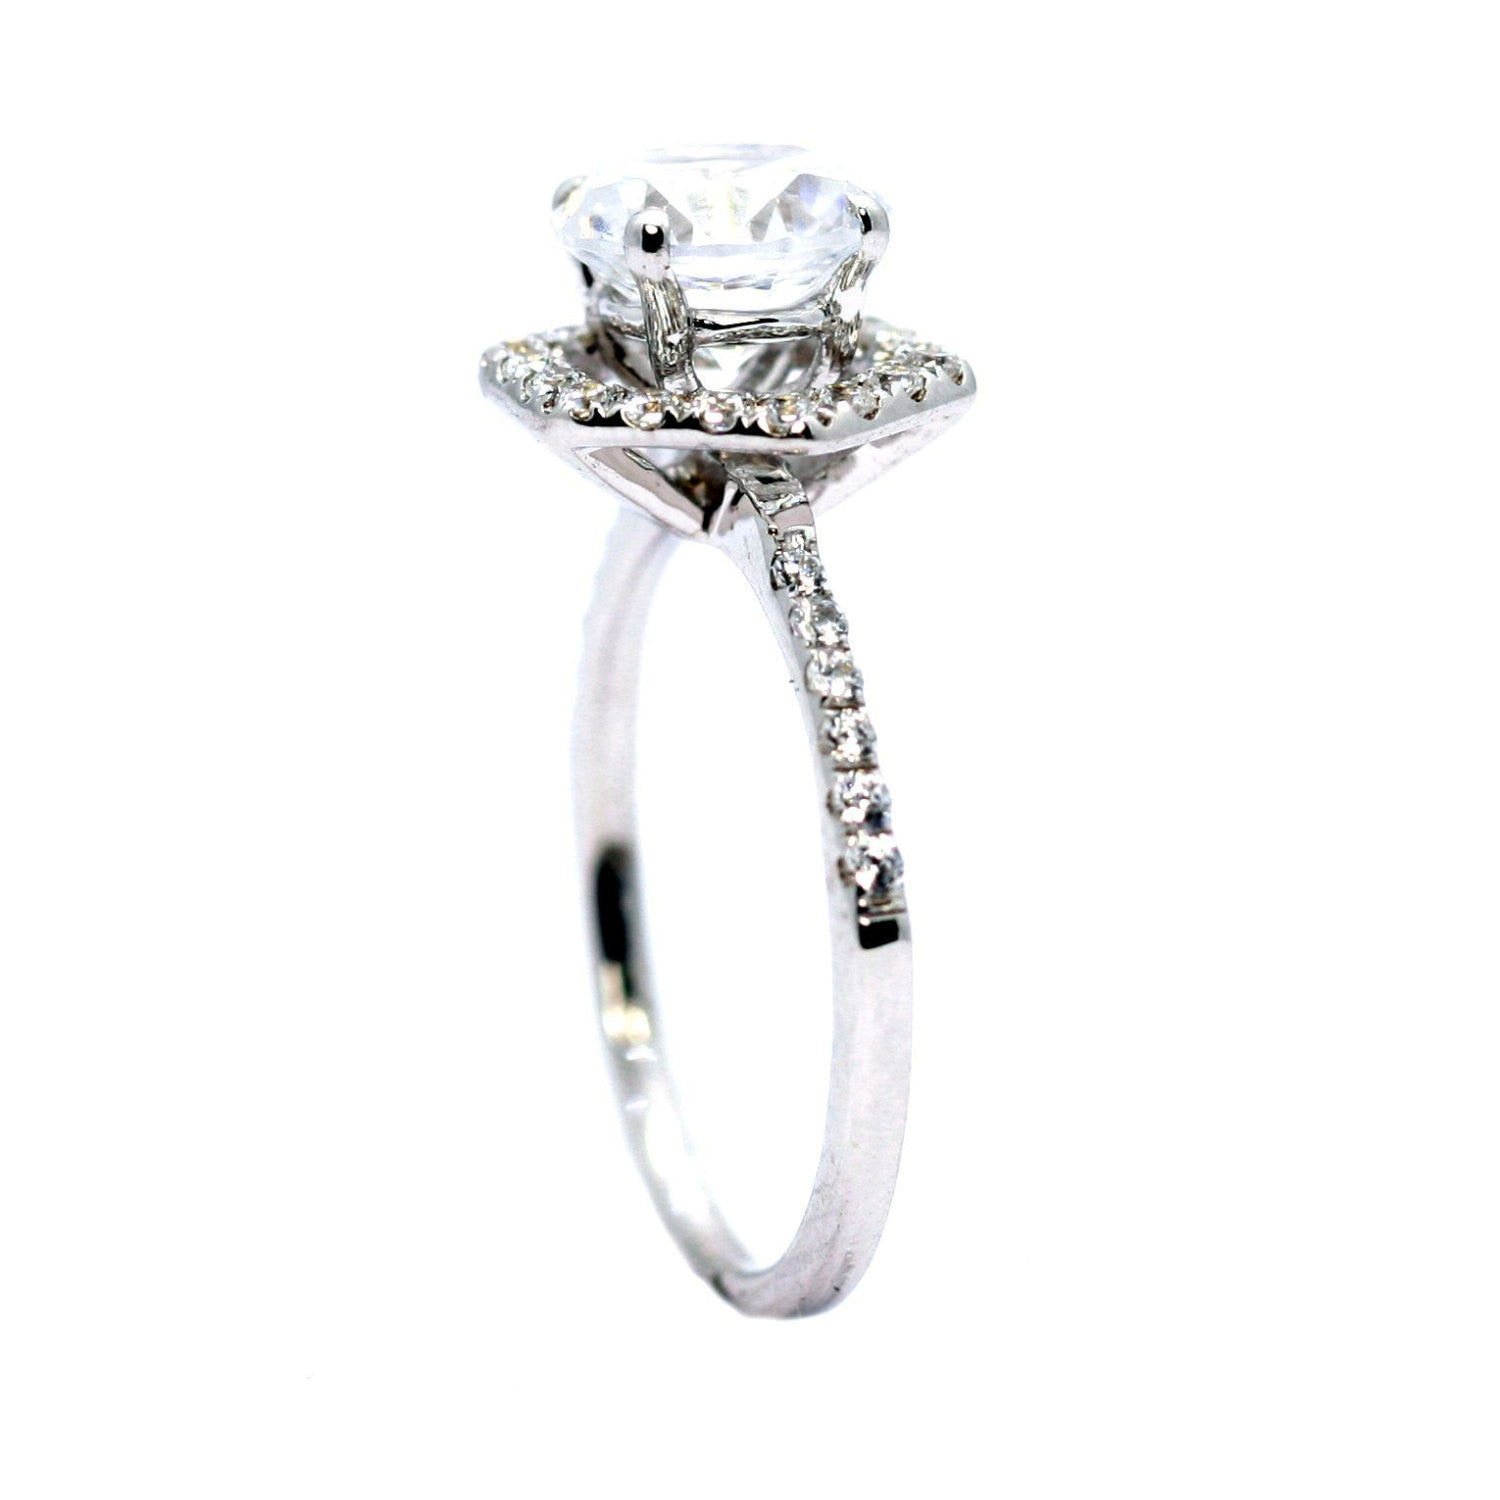 sidestones cluster grace diamond ring setting new engagement marquise side luxury with stones in rings settings of elegant inspirational jewellery